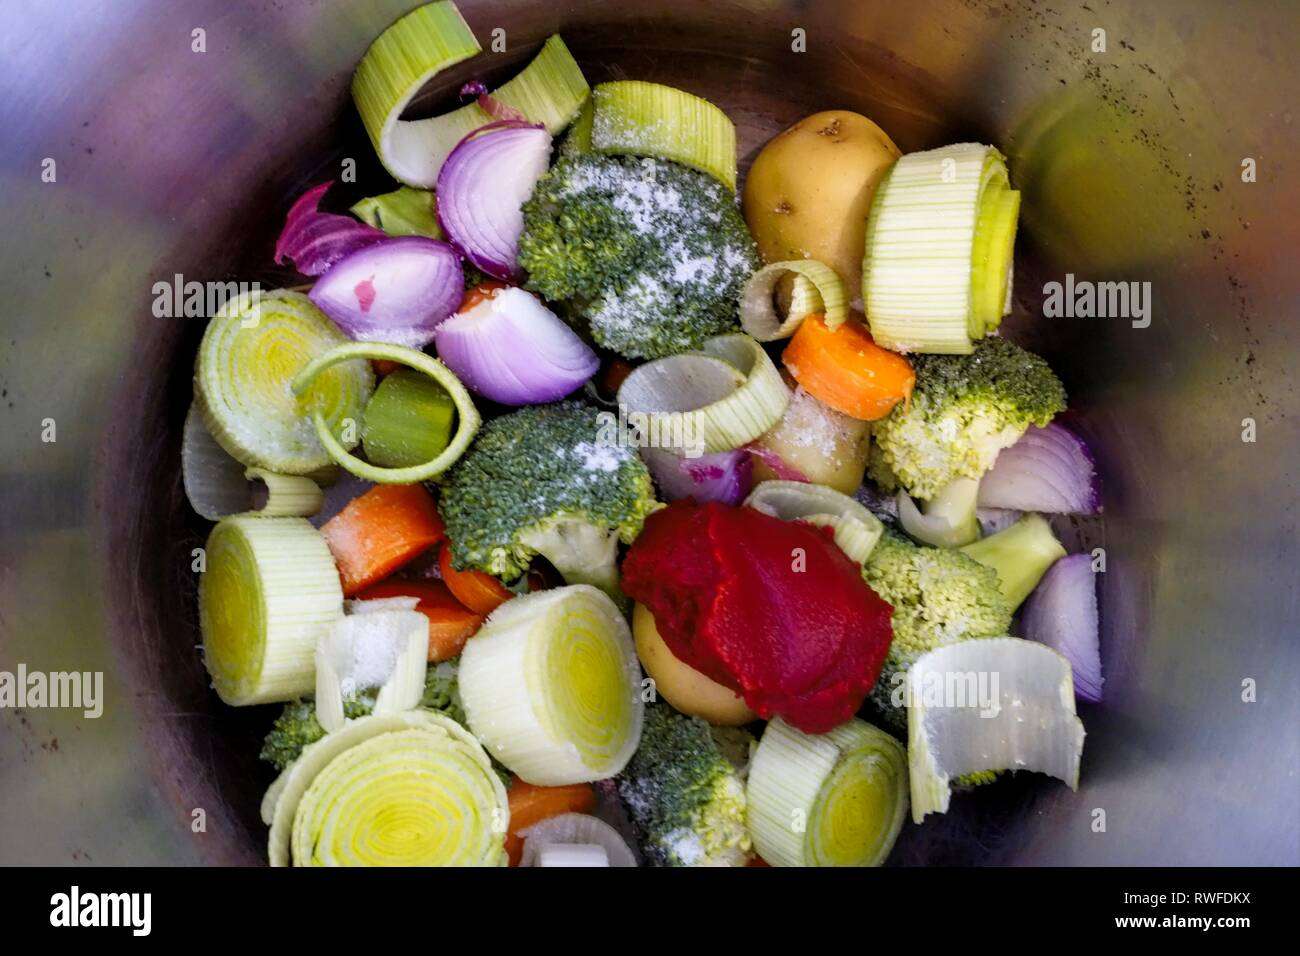 Preparation of Mixed Vegetables to be cooked as a Casserole in a Pressure Cooker - Stock Image